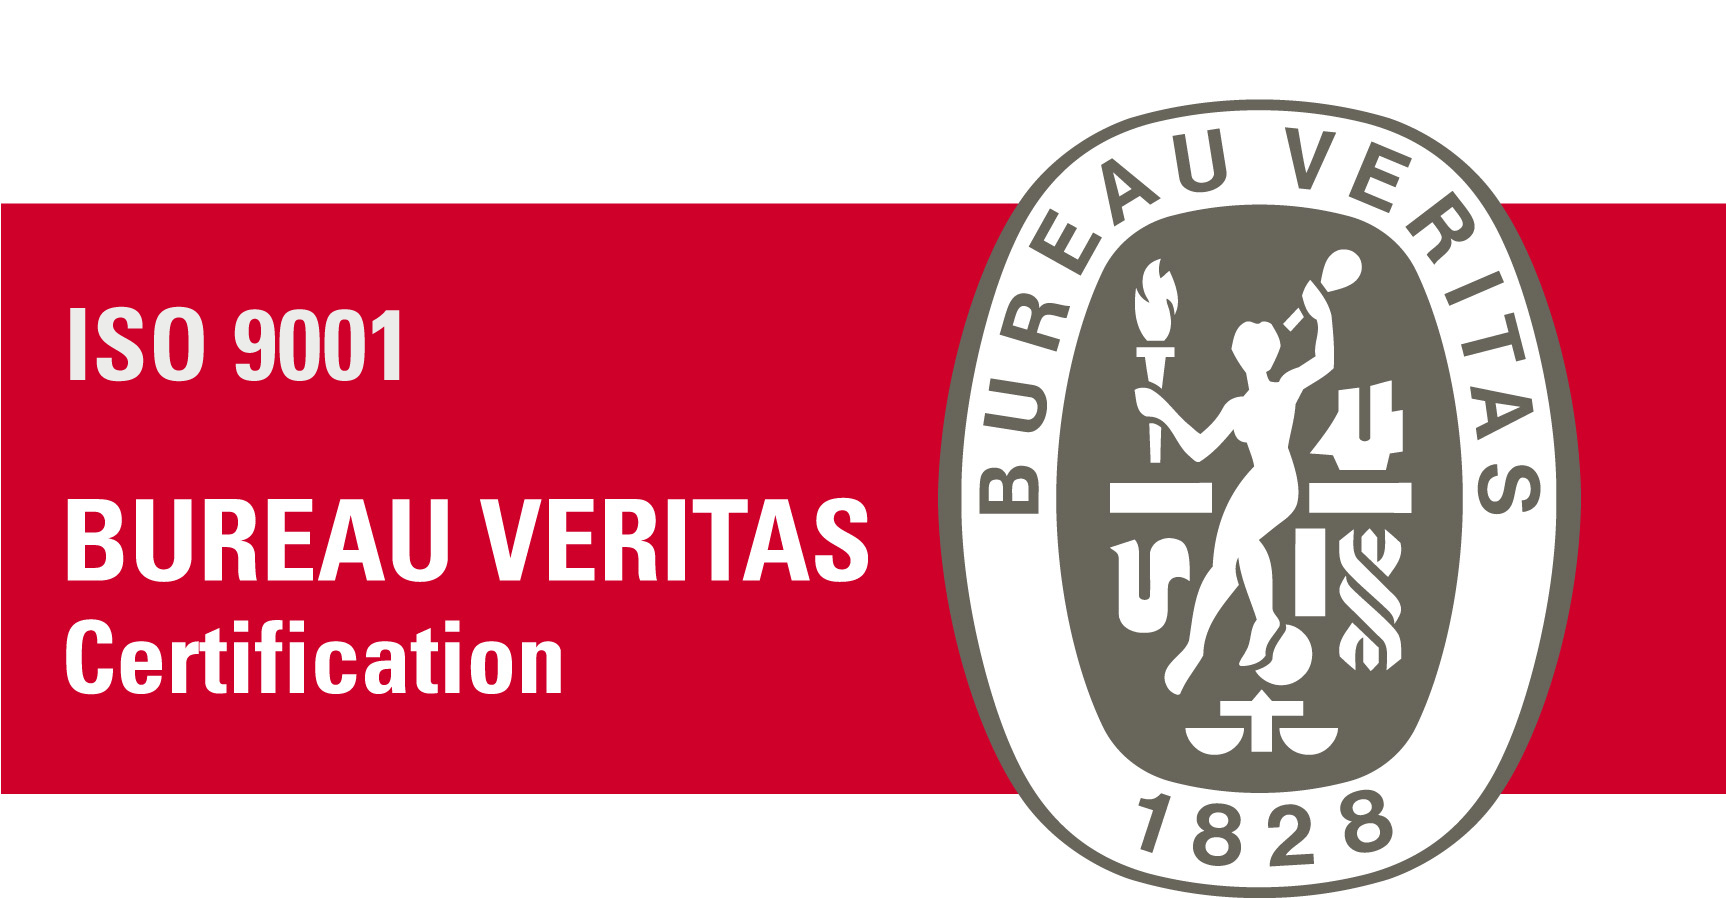 BV_Certification_ISO_9001